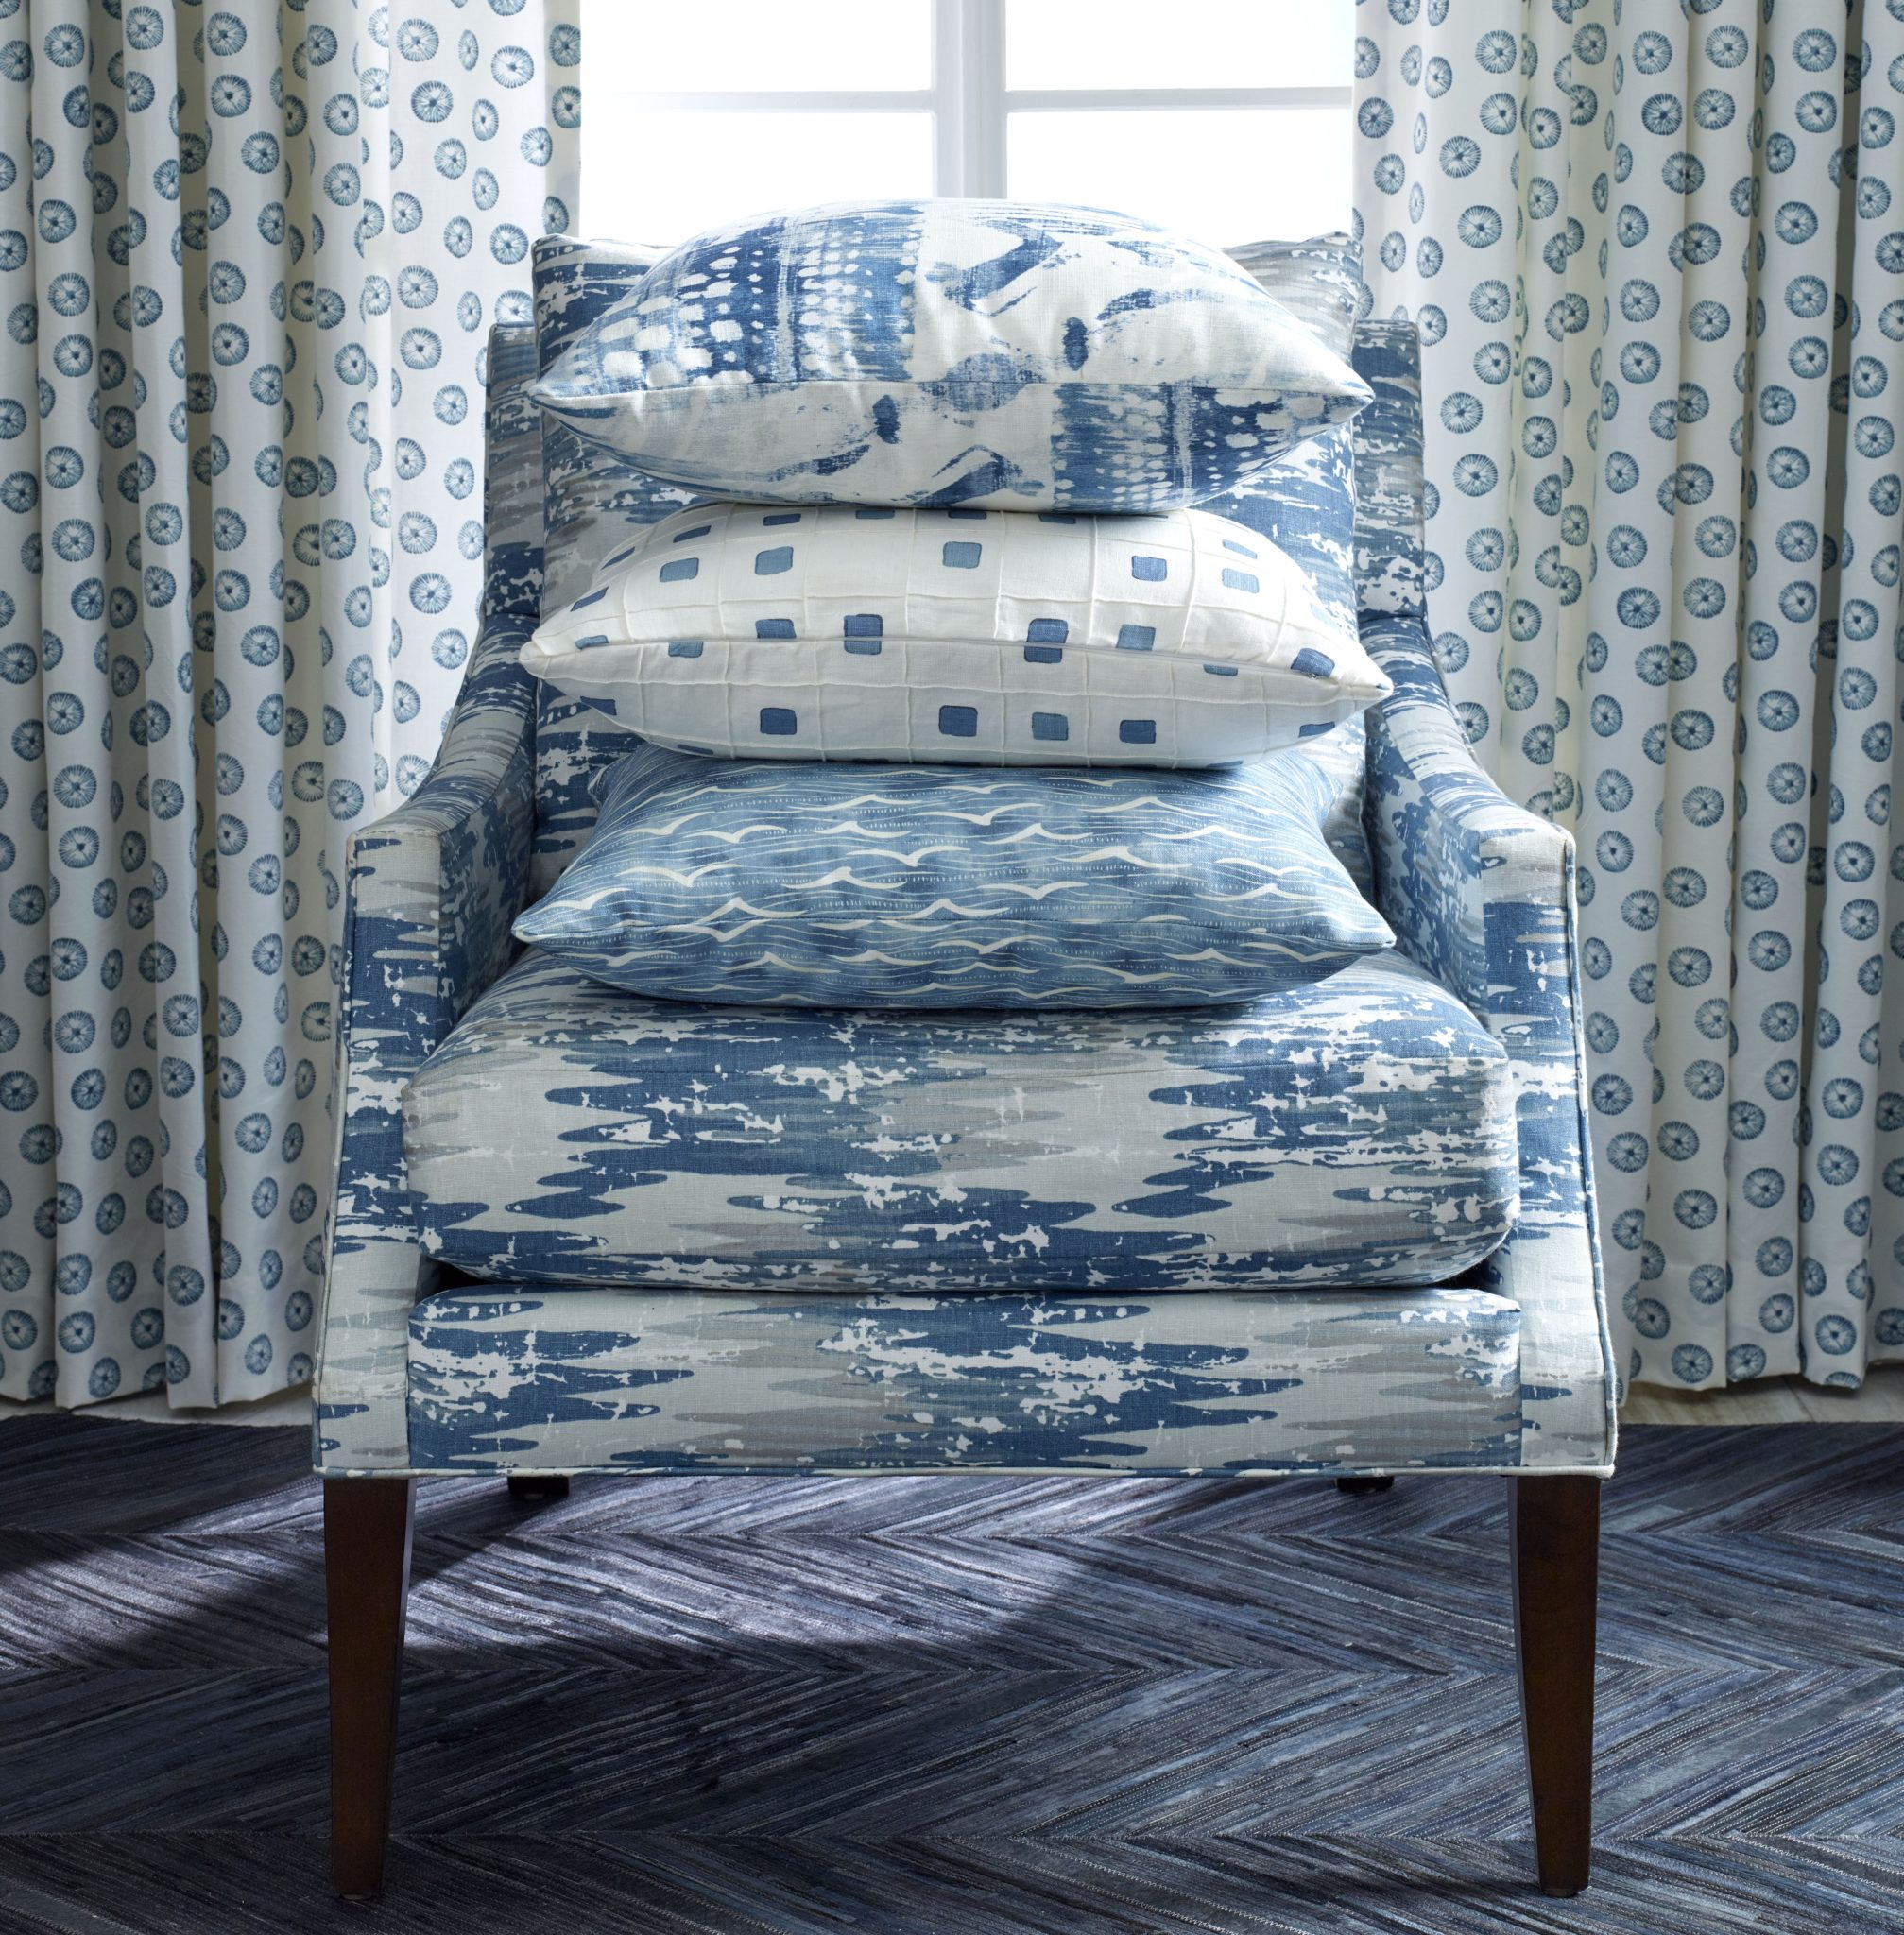 More of the new fabrics in ocean colors on display. The curtains are Onshore in Ocean; the chair is in Whitecap in River. The pillows, from top to bottom, are Surfwood in Ocean, Gridwork in Ocean, and Angelus in Pacific.